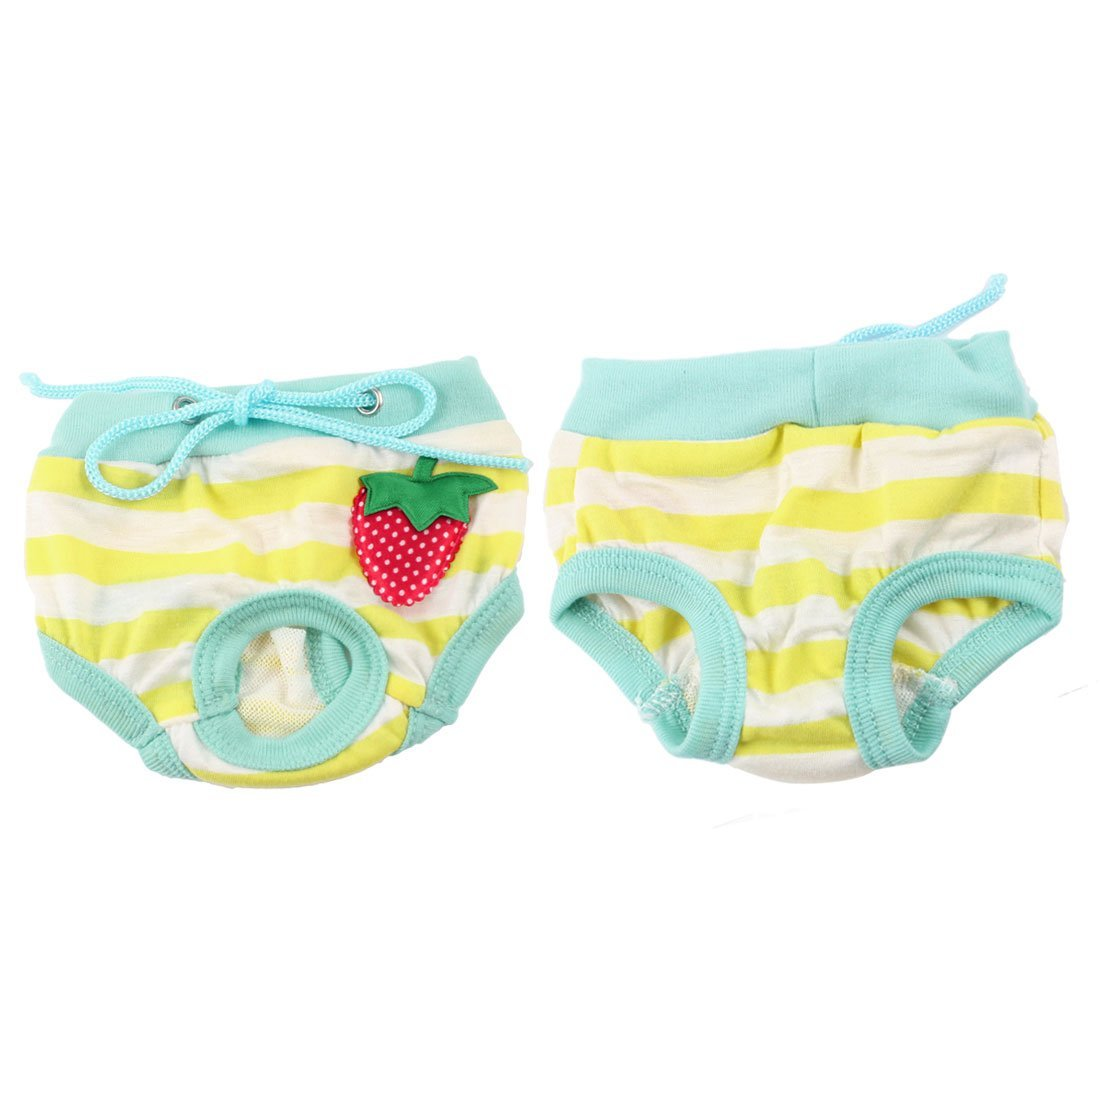 Uxcell Yorkie Pet Dog Yellow White Striped Adjustable Waist Diaper Pants